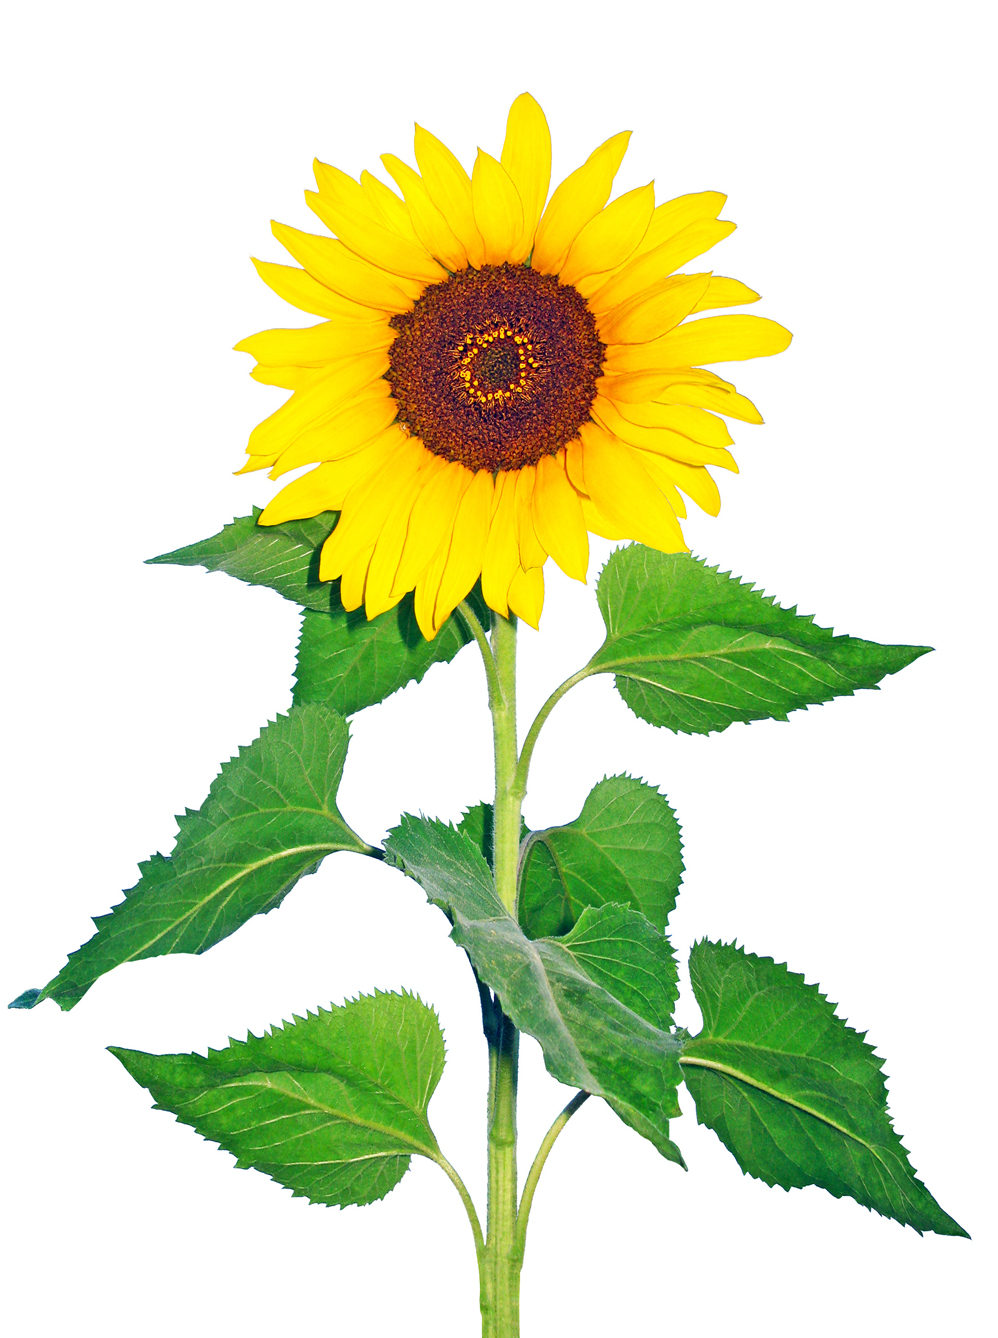 hight resolution of sunflower jpg